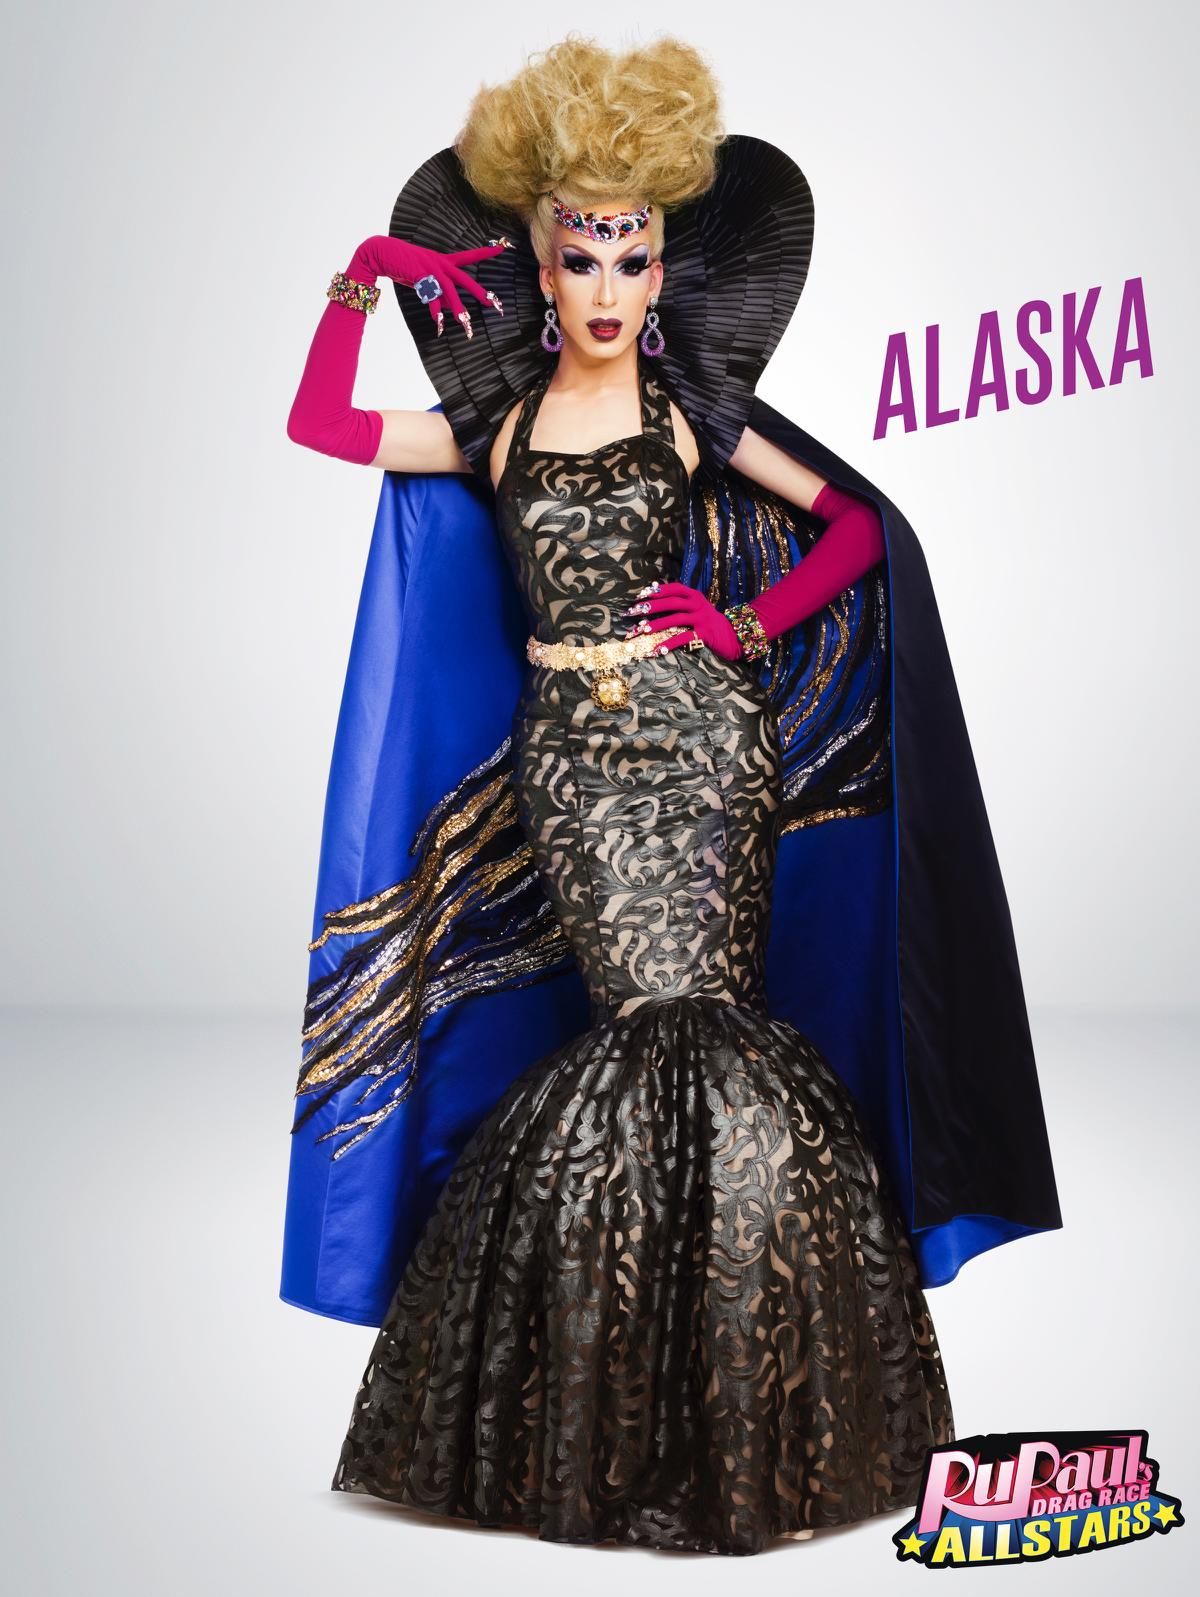 And the winner of 'RuPaul's Drag Race All Stars' is …